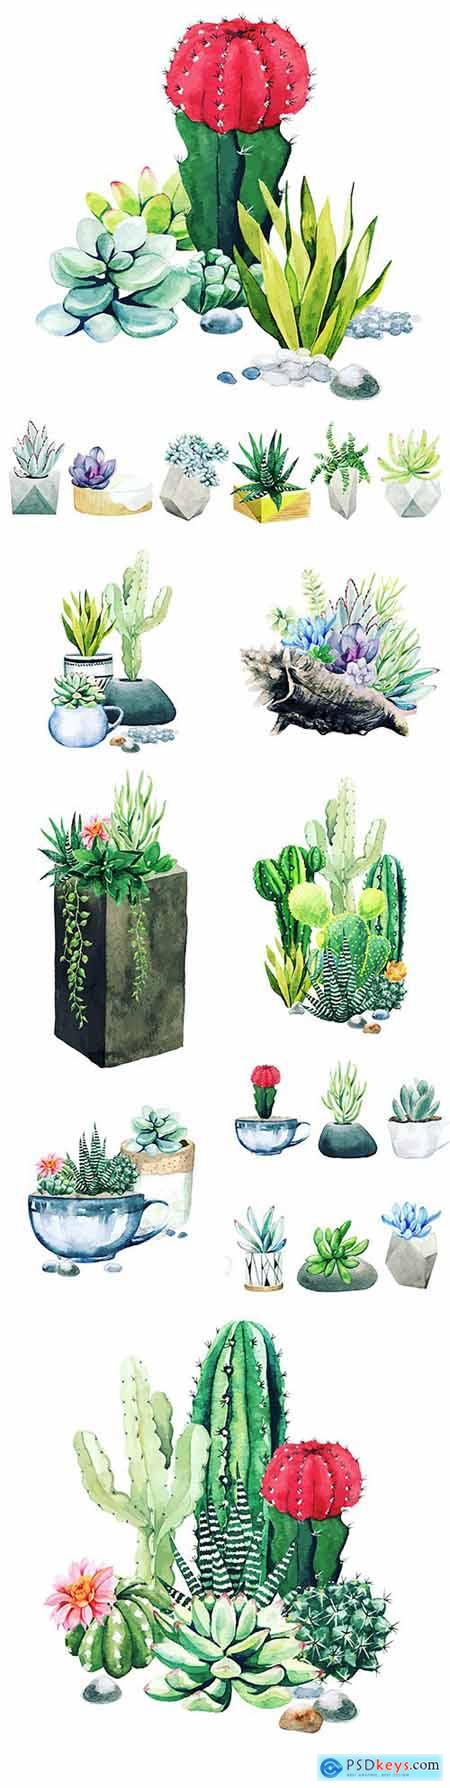 Cacti and succulents composition from potted watercolor plants